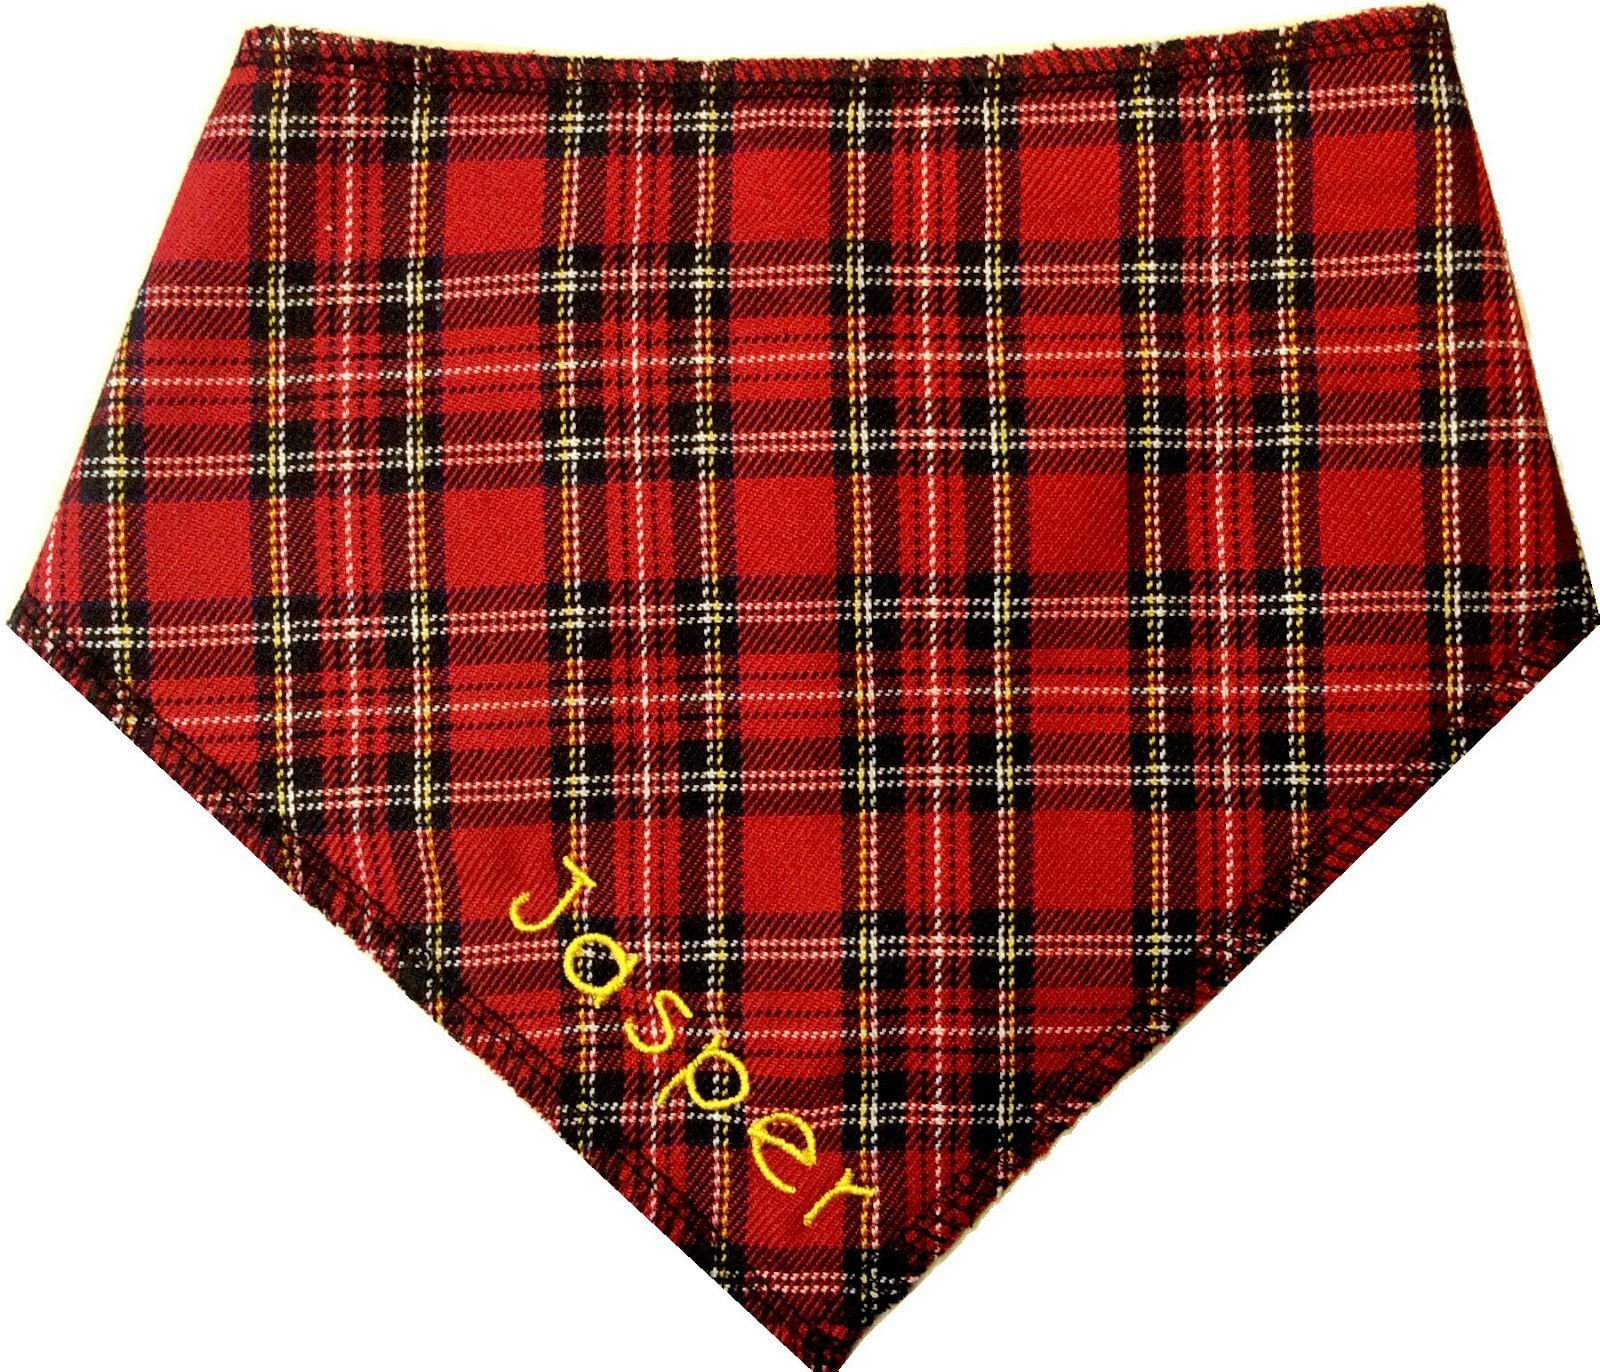 Spoilt Rotten Pets (S4) Personalised Red Tartan Royal Stewart Kilting Dog Bandana – For Chow Chow, St Bernard, Mountain dog – Fantastic Quality Adjustable Design – For Larger Breeds Of Dog